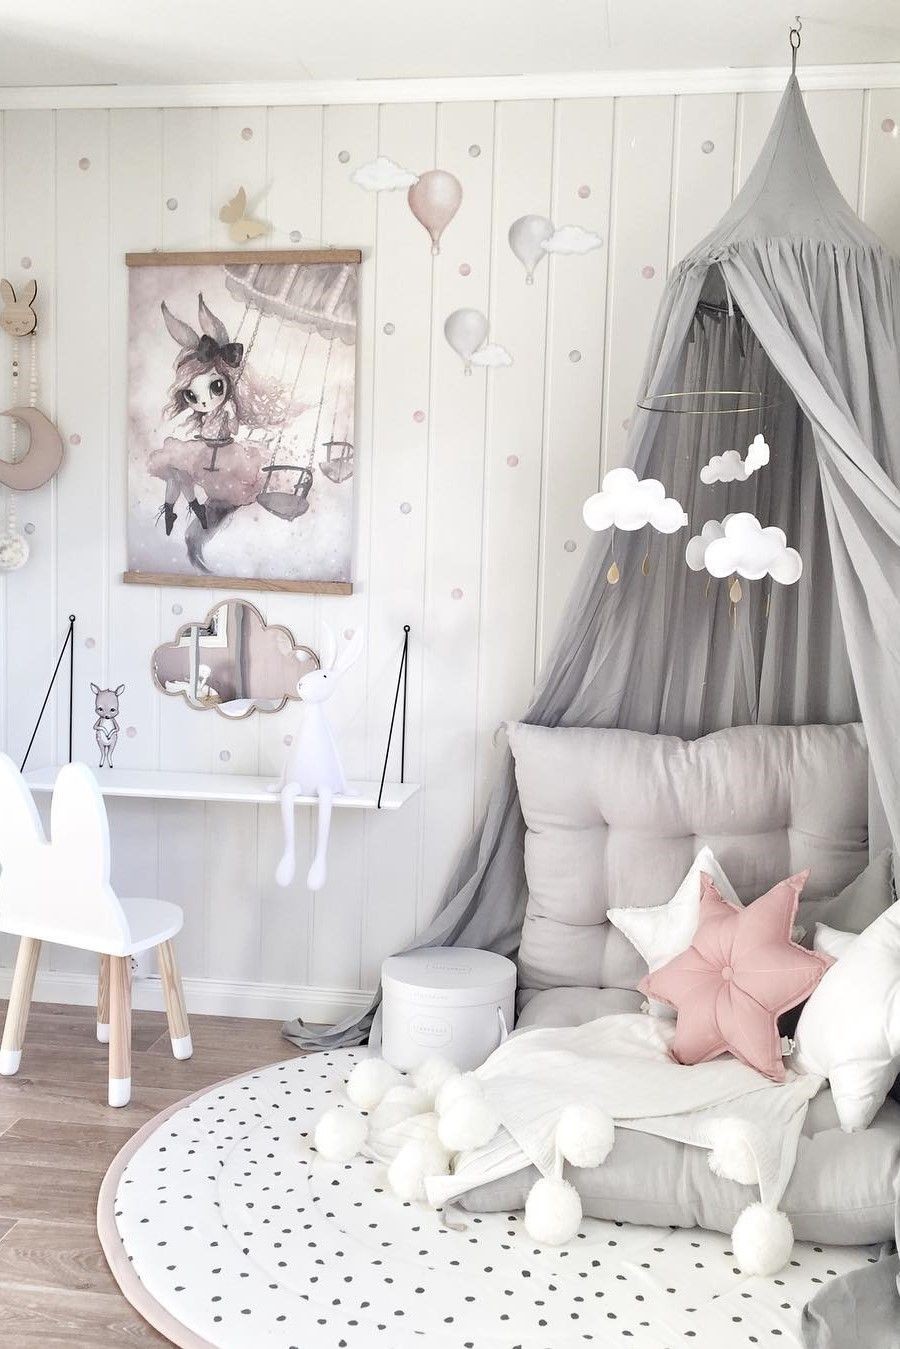 Pastel Girls Room Ideas Pink And Grey Girls Room Design Girls Kidsroom Kidsroom Decor Grey Girls Rooms Pastel Girls Room Girls Room Design